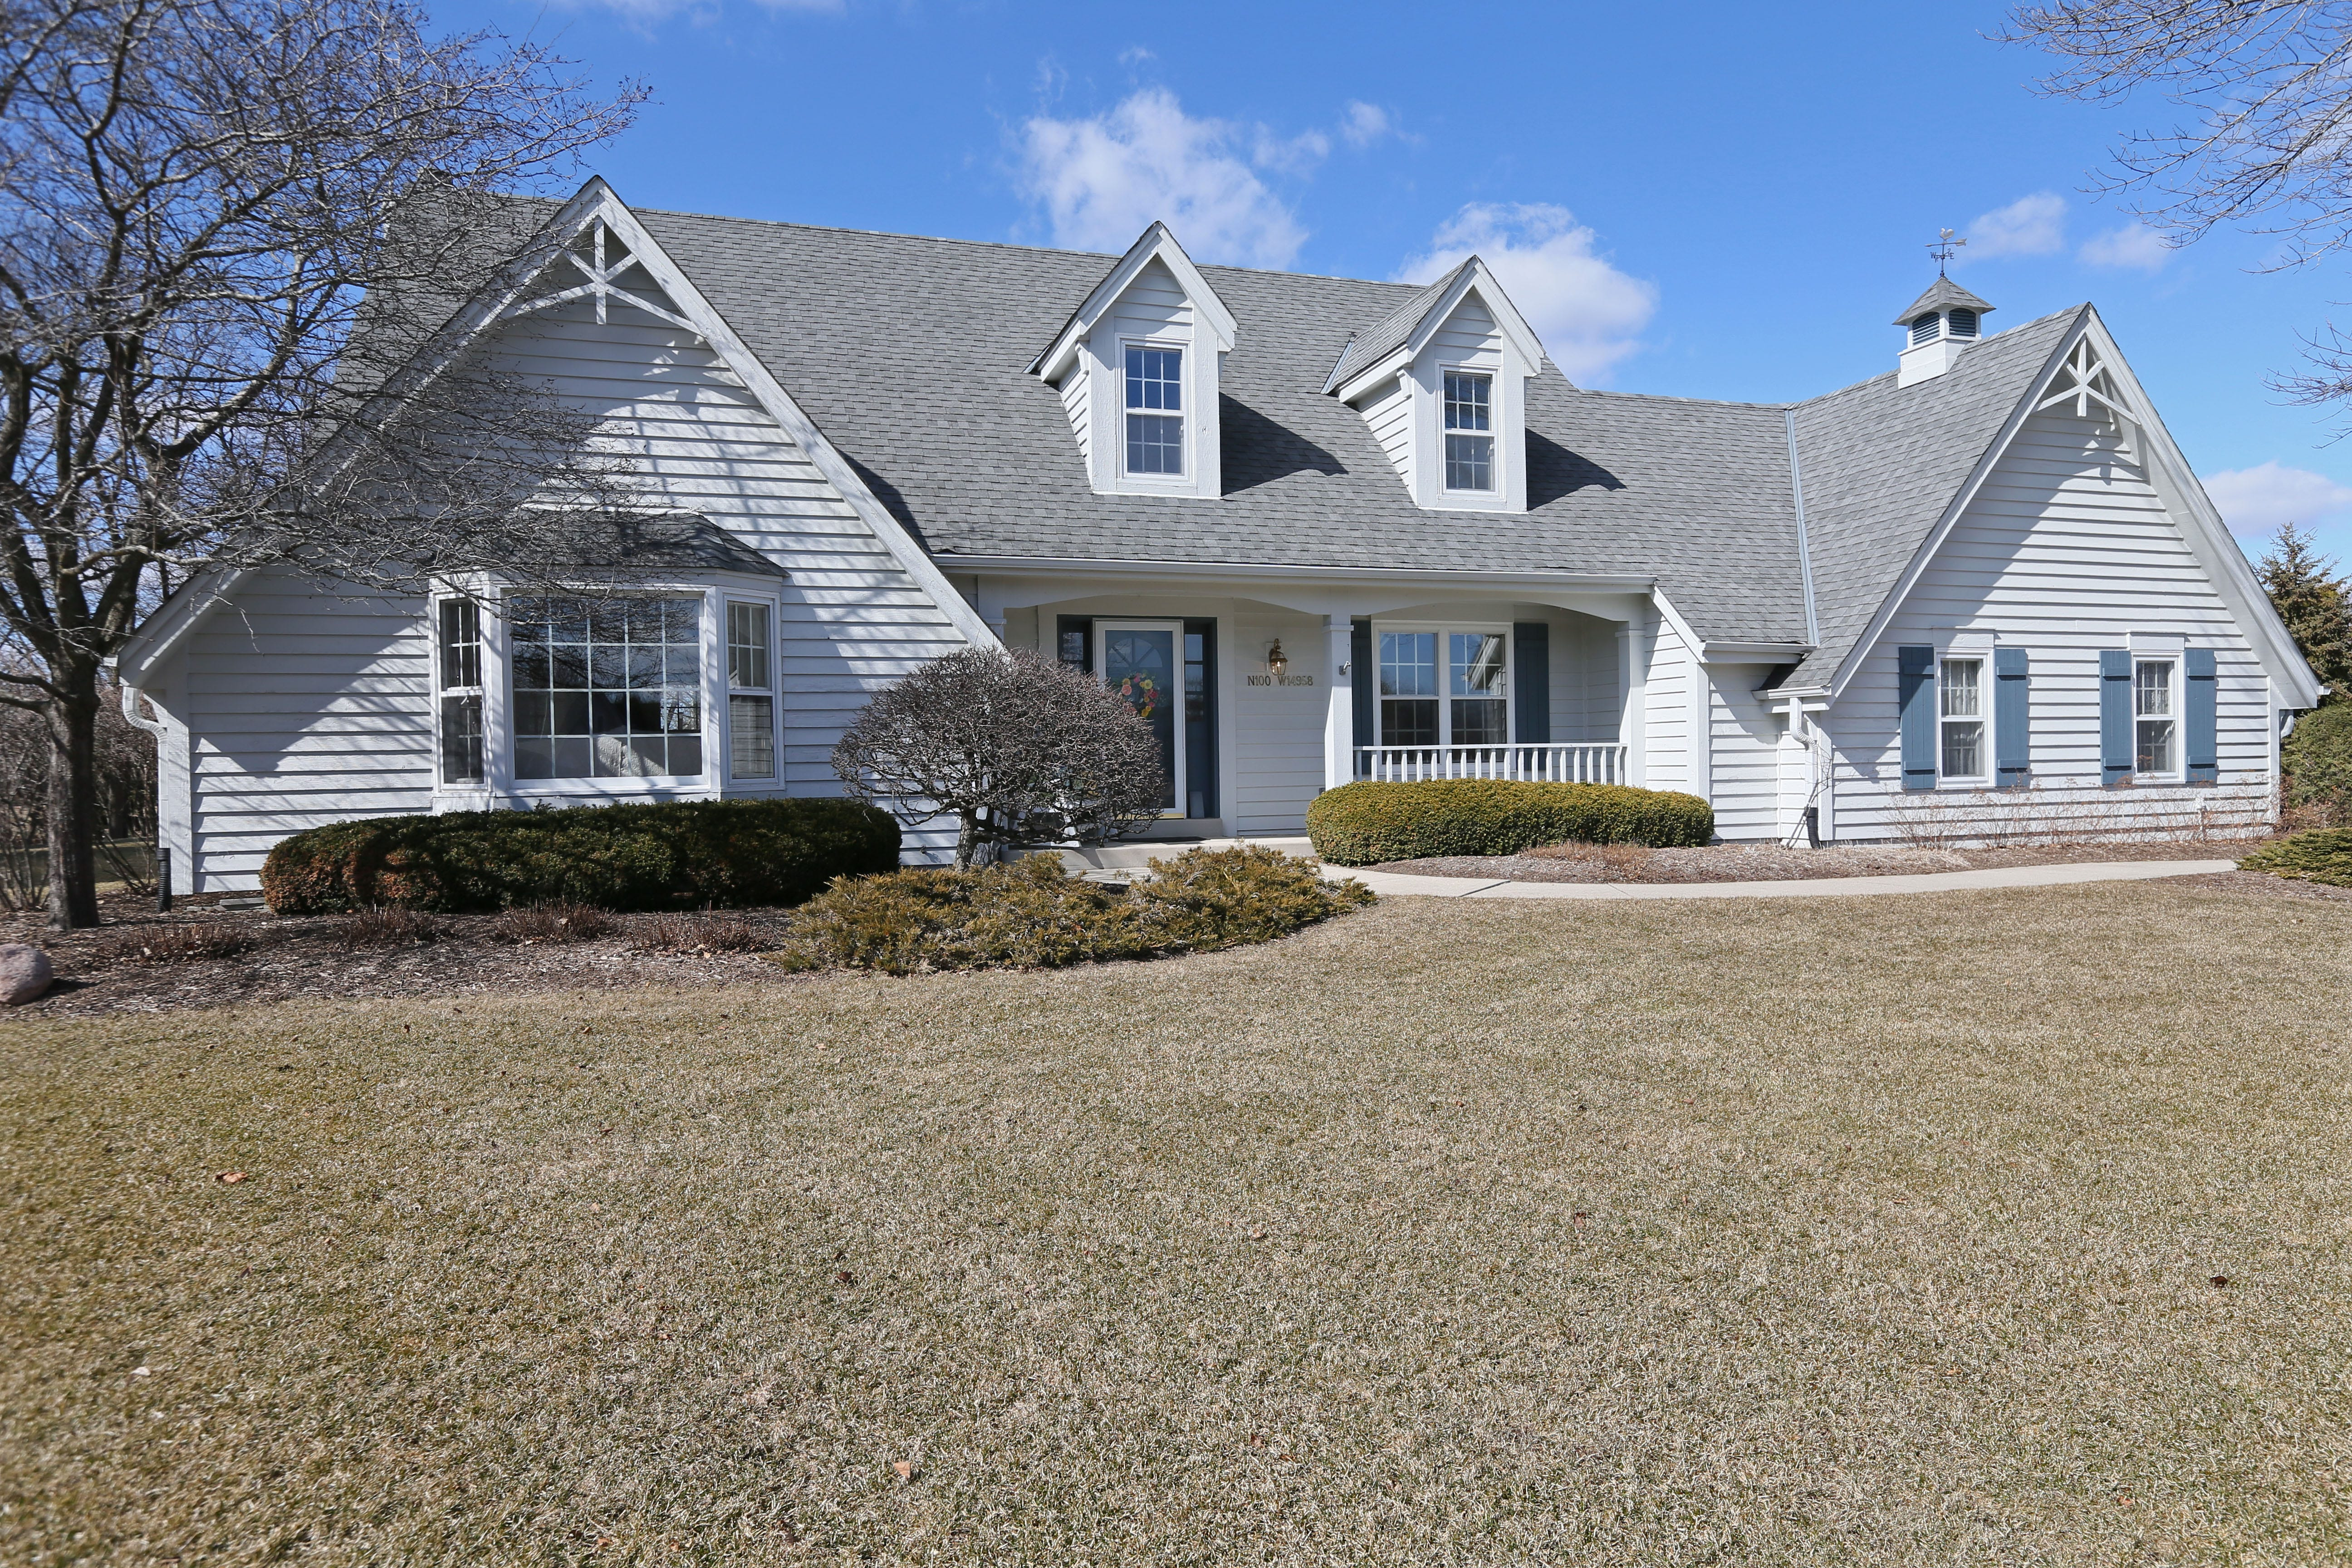 The Kluthsu0027 Germantown Cape Cod Home Has 2,580 Square